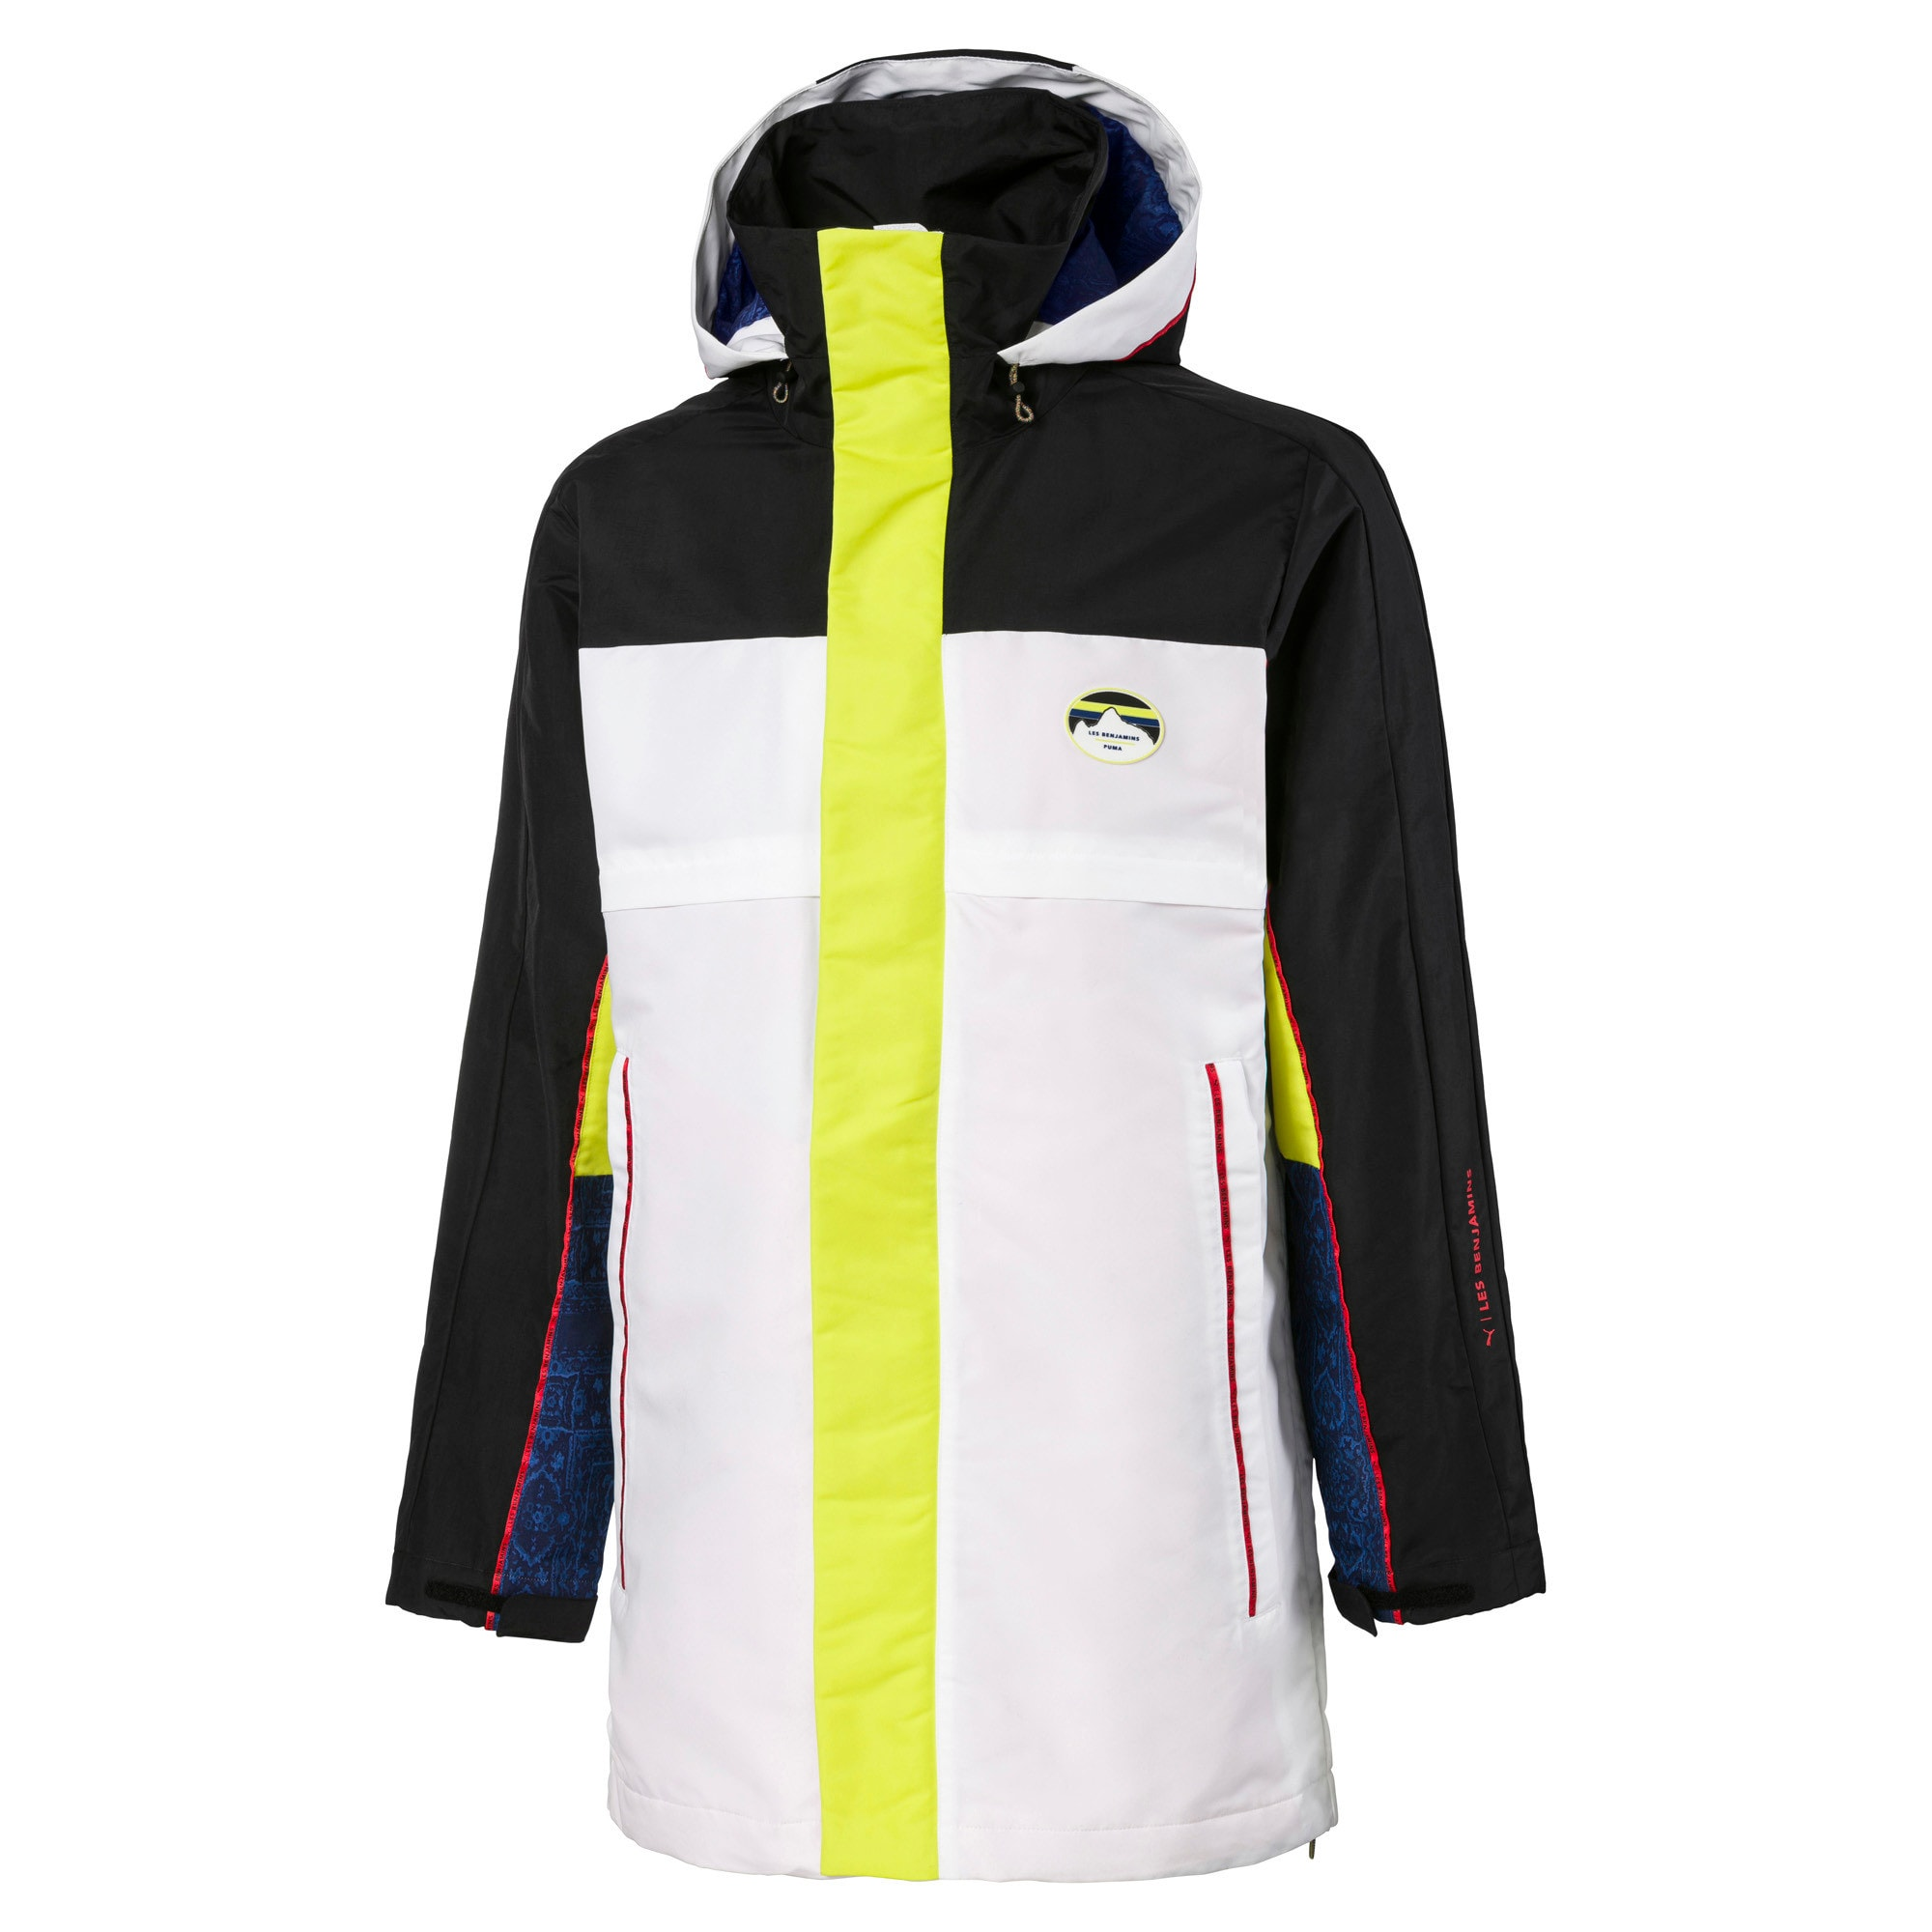 Thumbnail 1 of PUMA x LES BENJAMINS Men's Storm Jacket, Puma White, medium